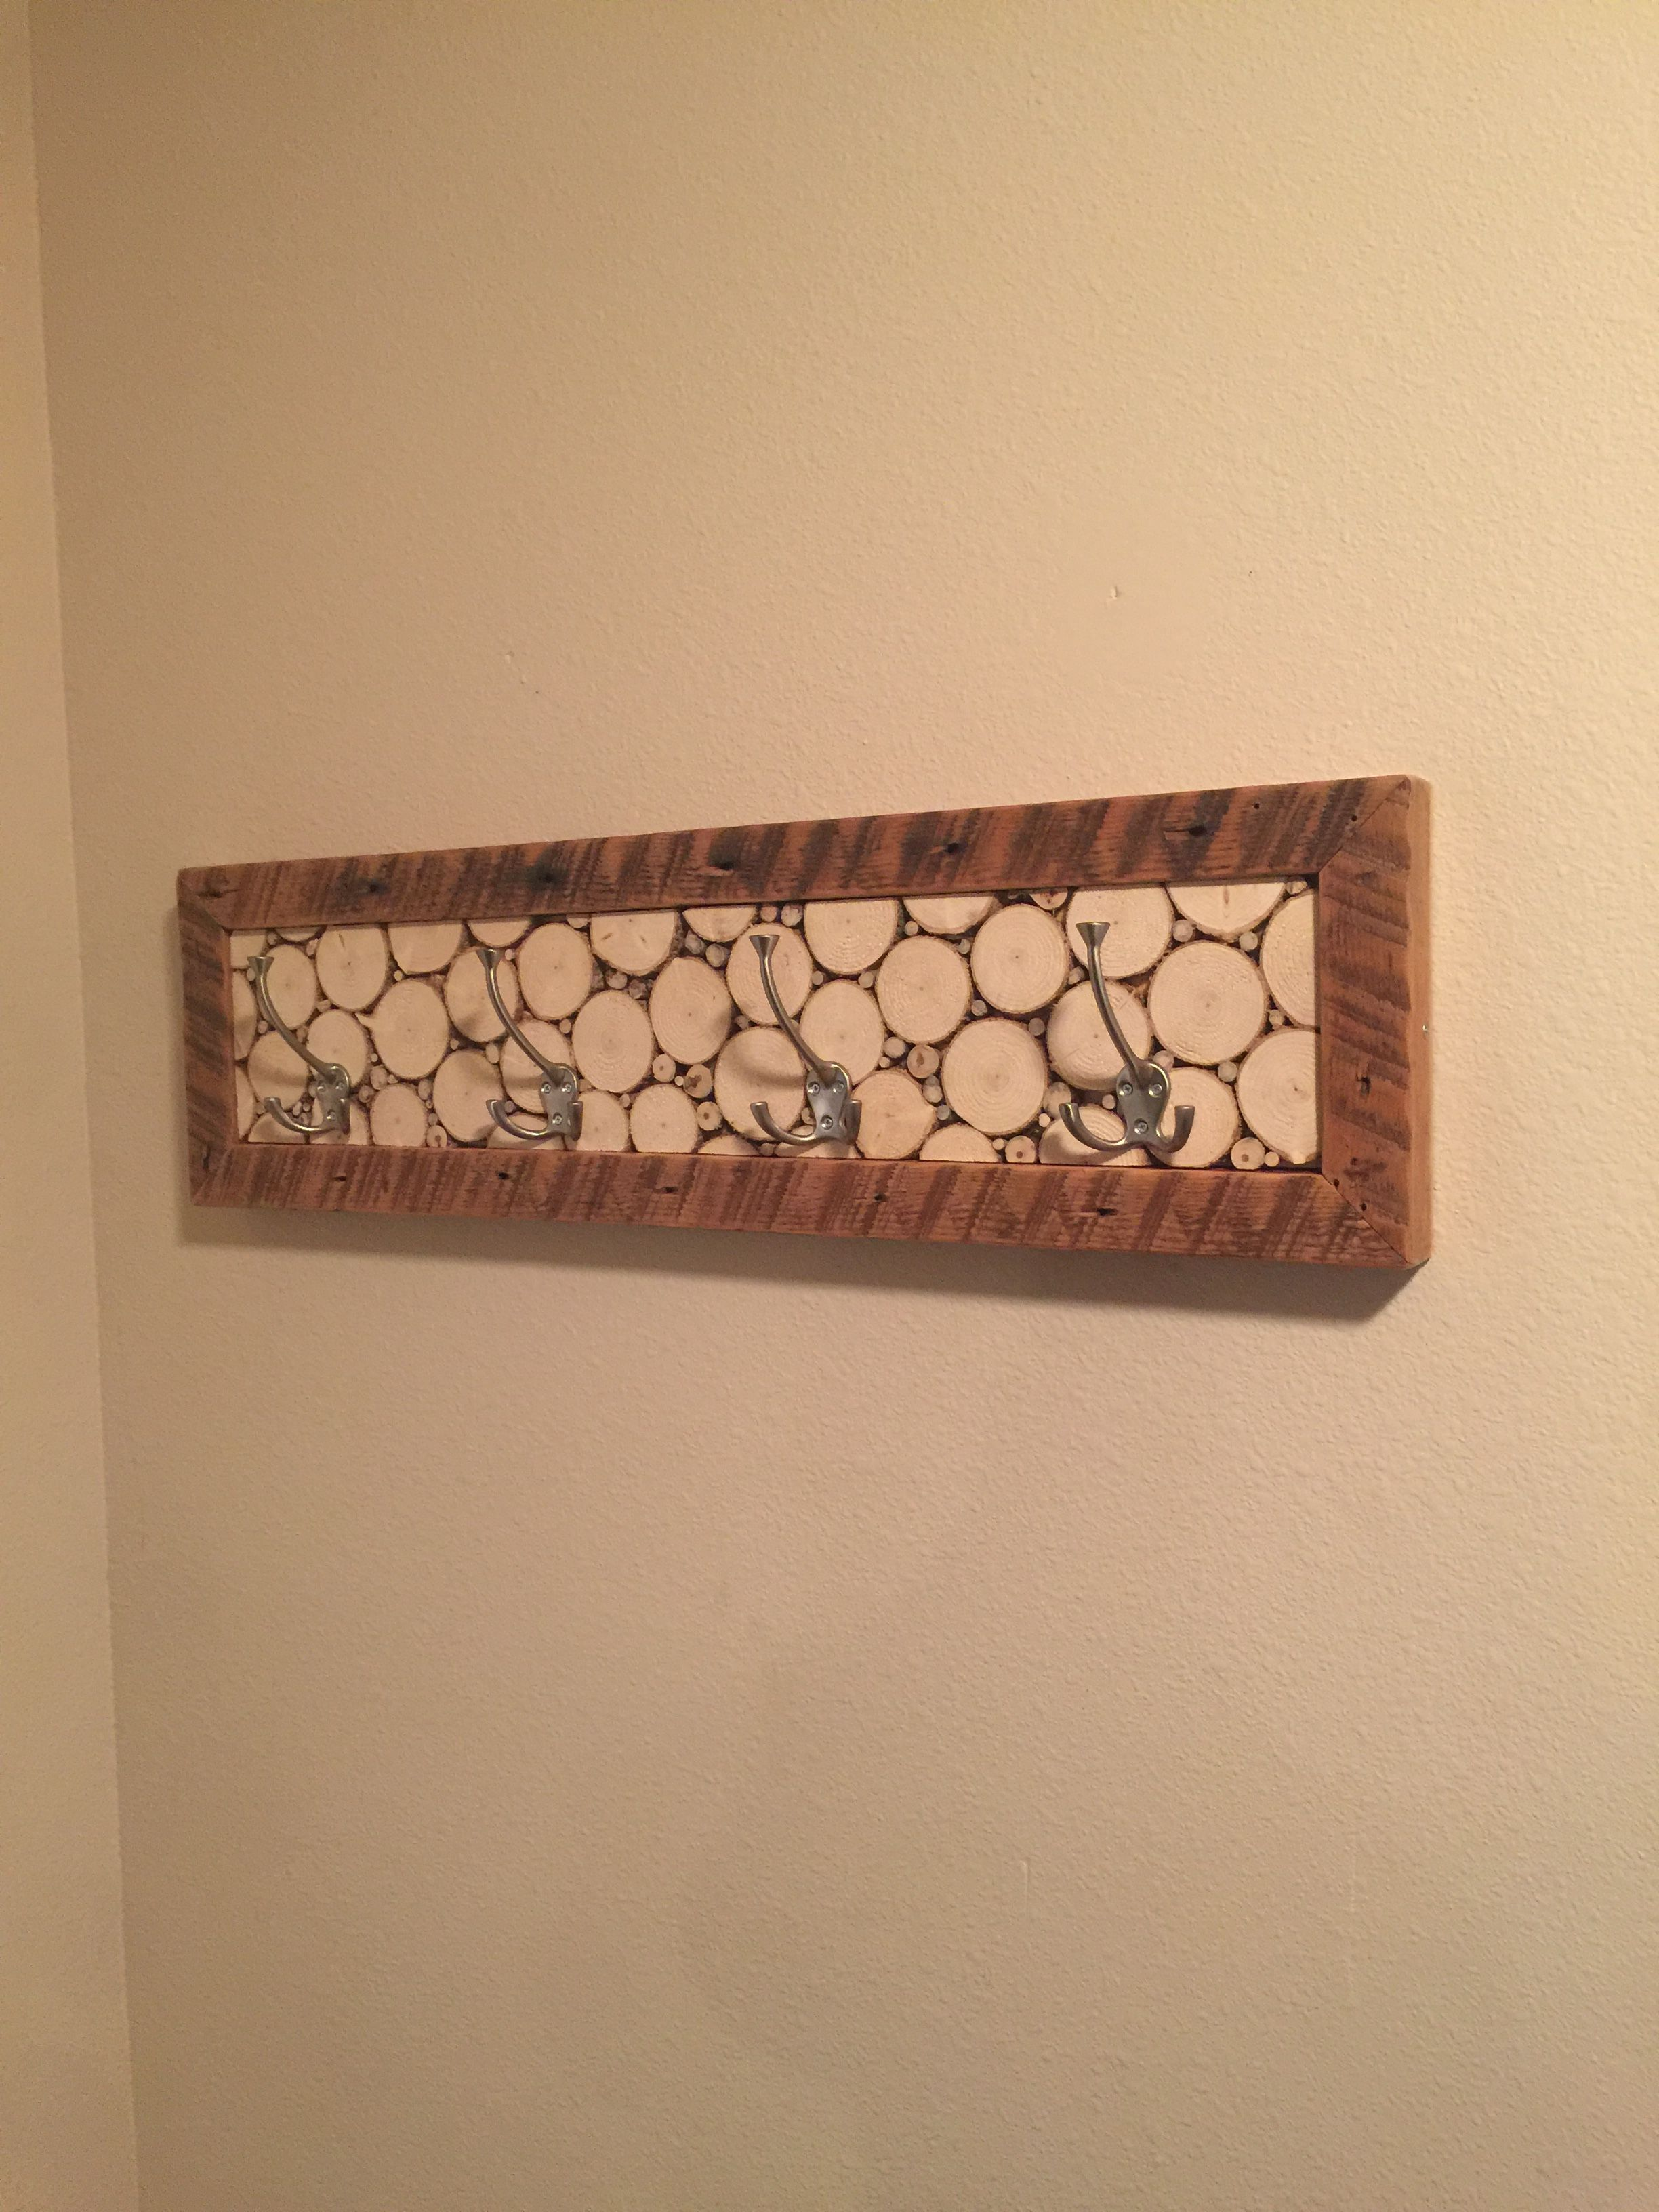 Coat rack spruce tree discs framed by the edges of old xs made